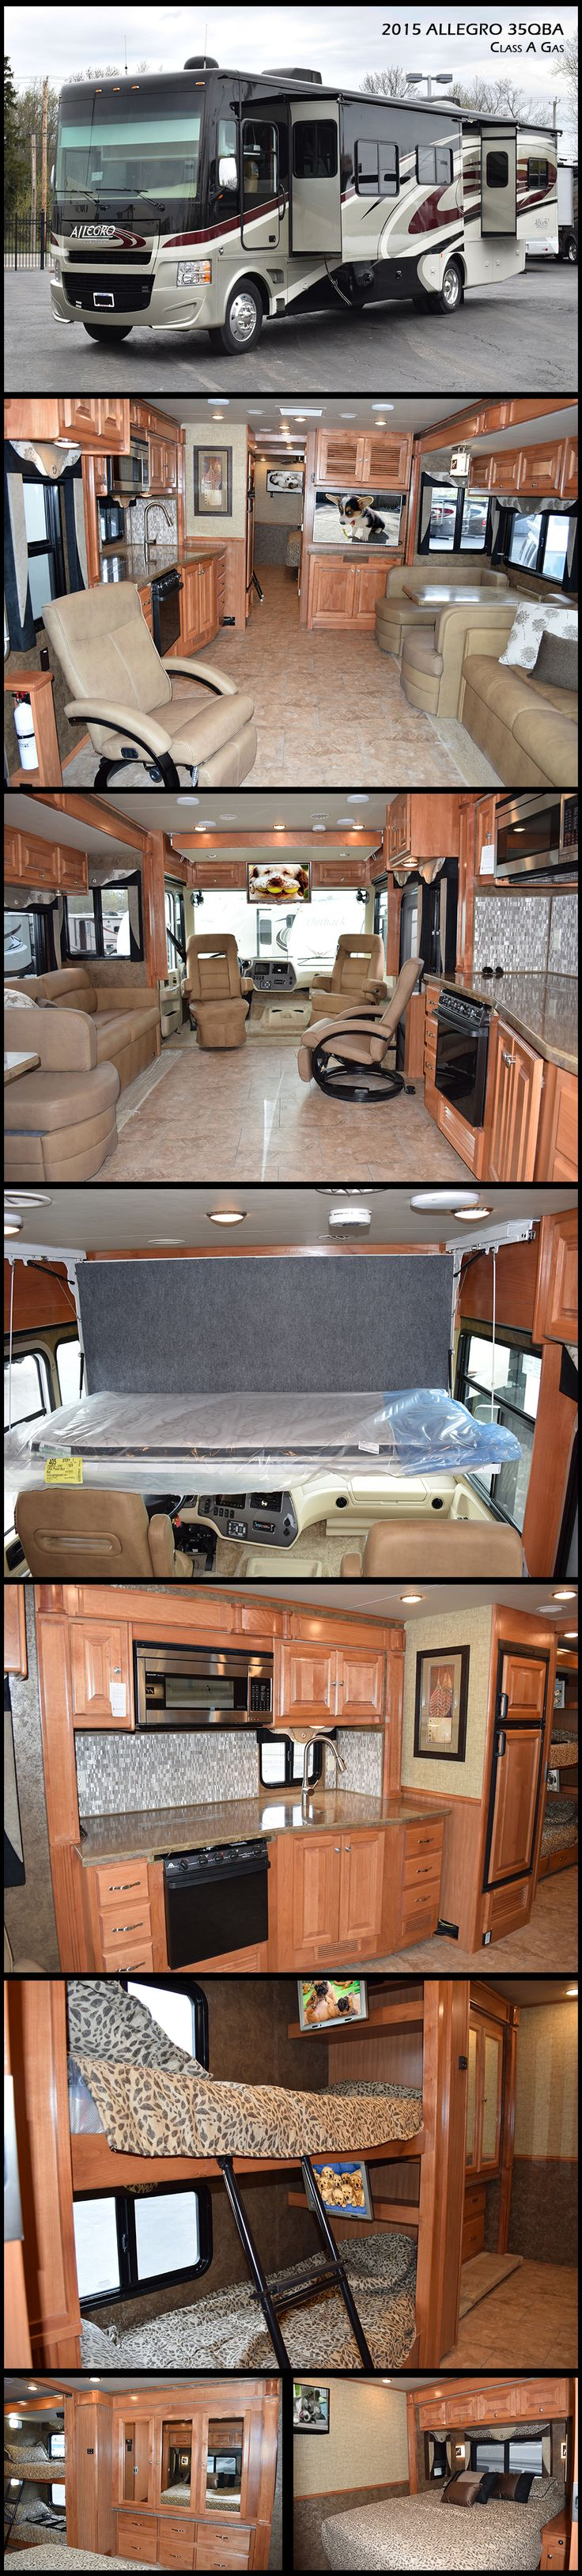 971df4ed024a4516152580b268513ec7 luxury motorhomes rv campers best 25 tiffin motorhomes ideas on pinterest class a rv, luxury 2011 Allegro Open Road 34TGA at pacquiaovsvargaslive.co